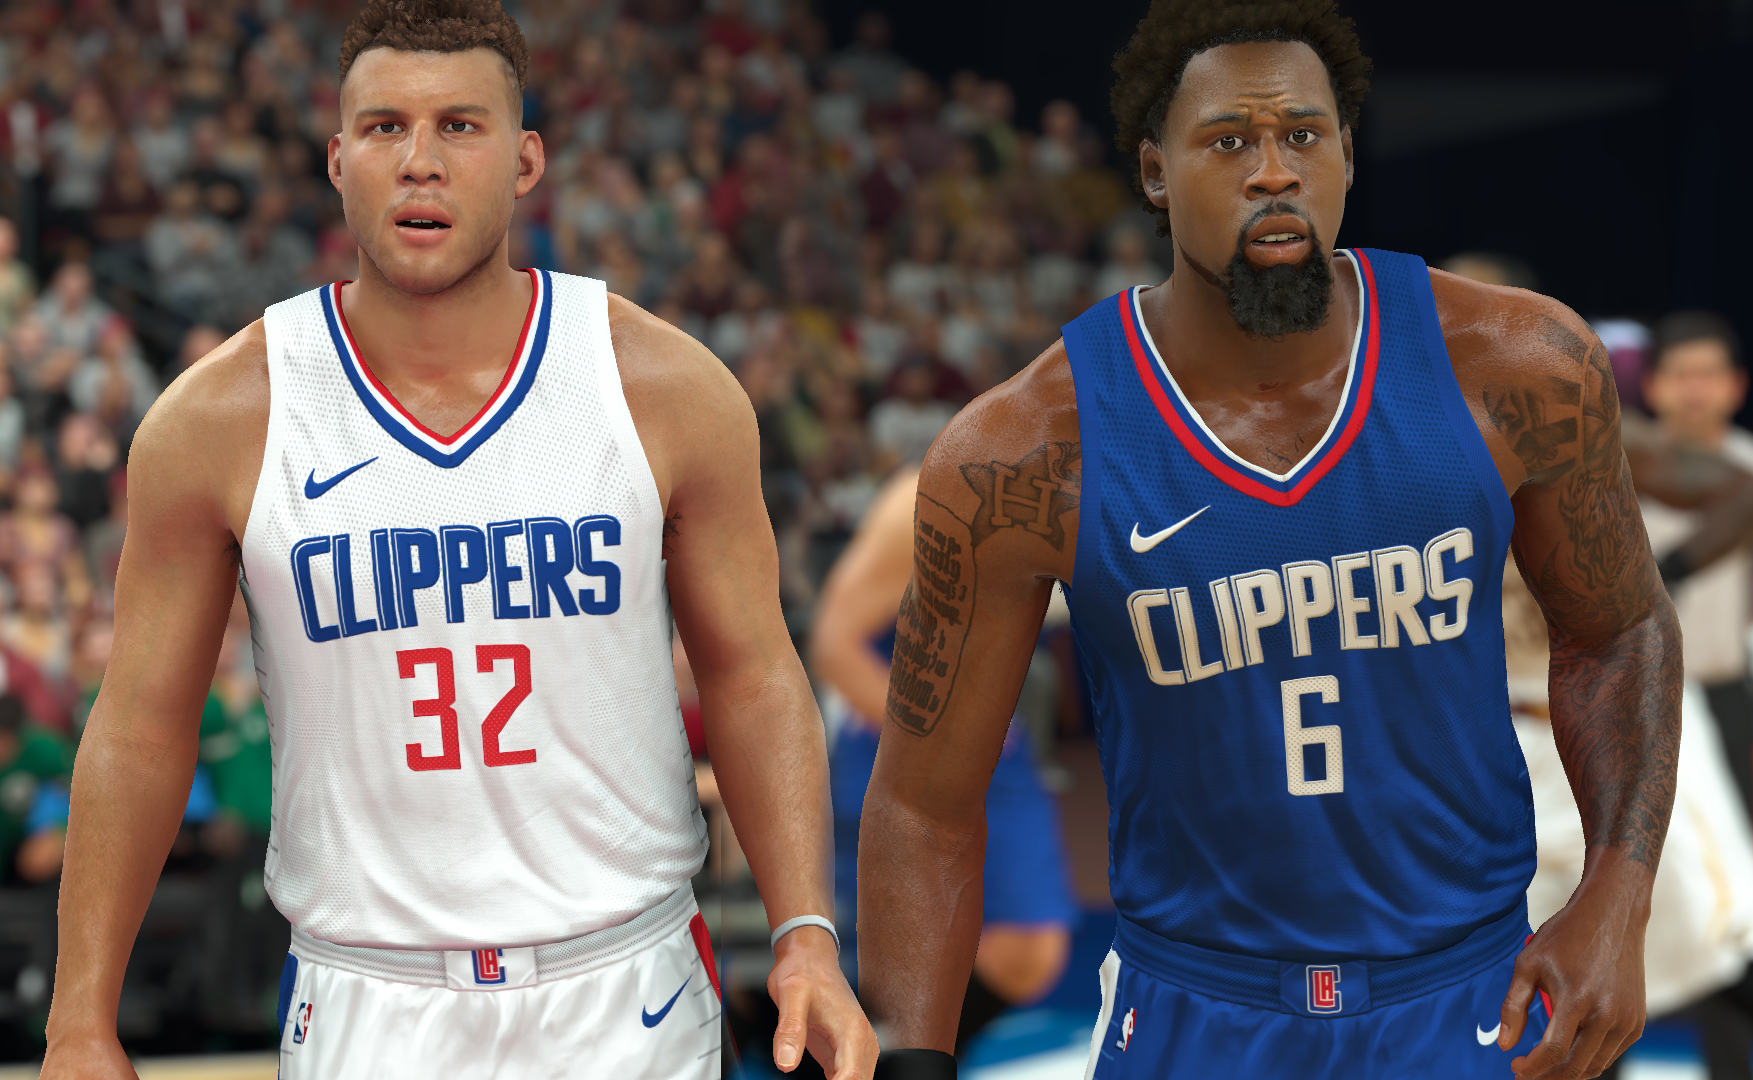 Los Angeles Clippers Jersey 2017-18 (pinoy21)